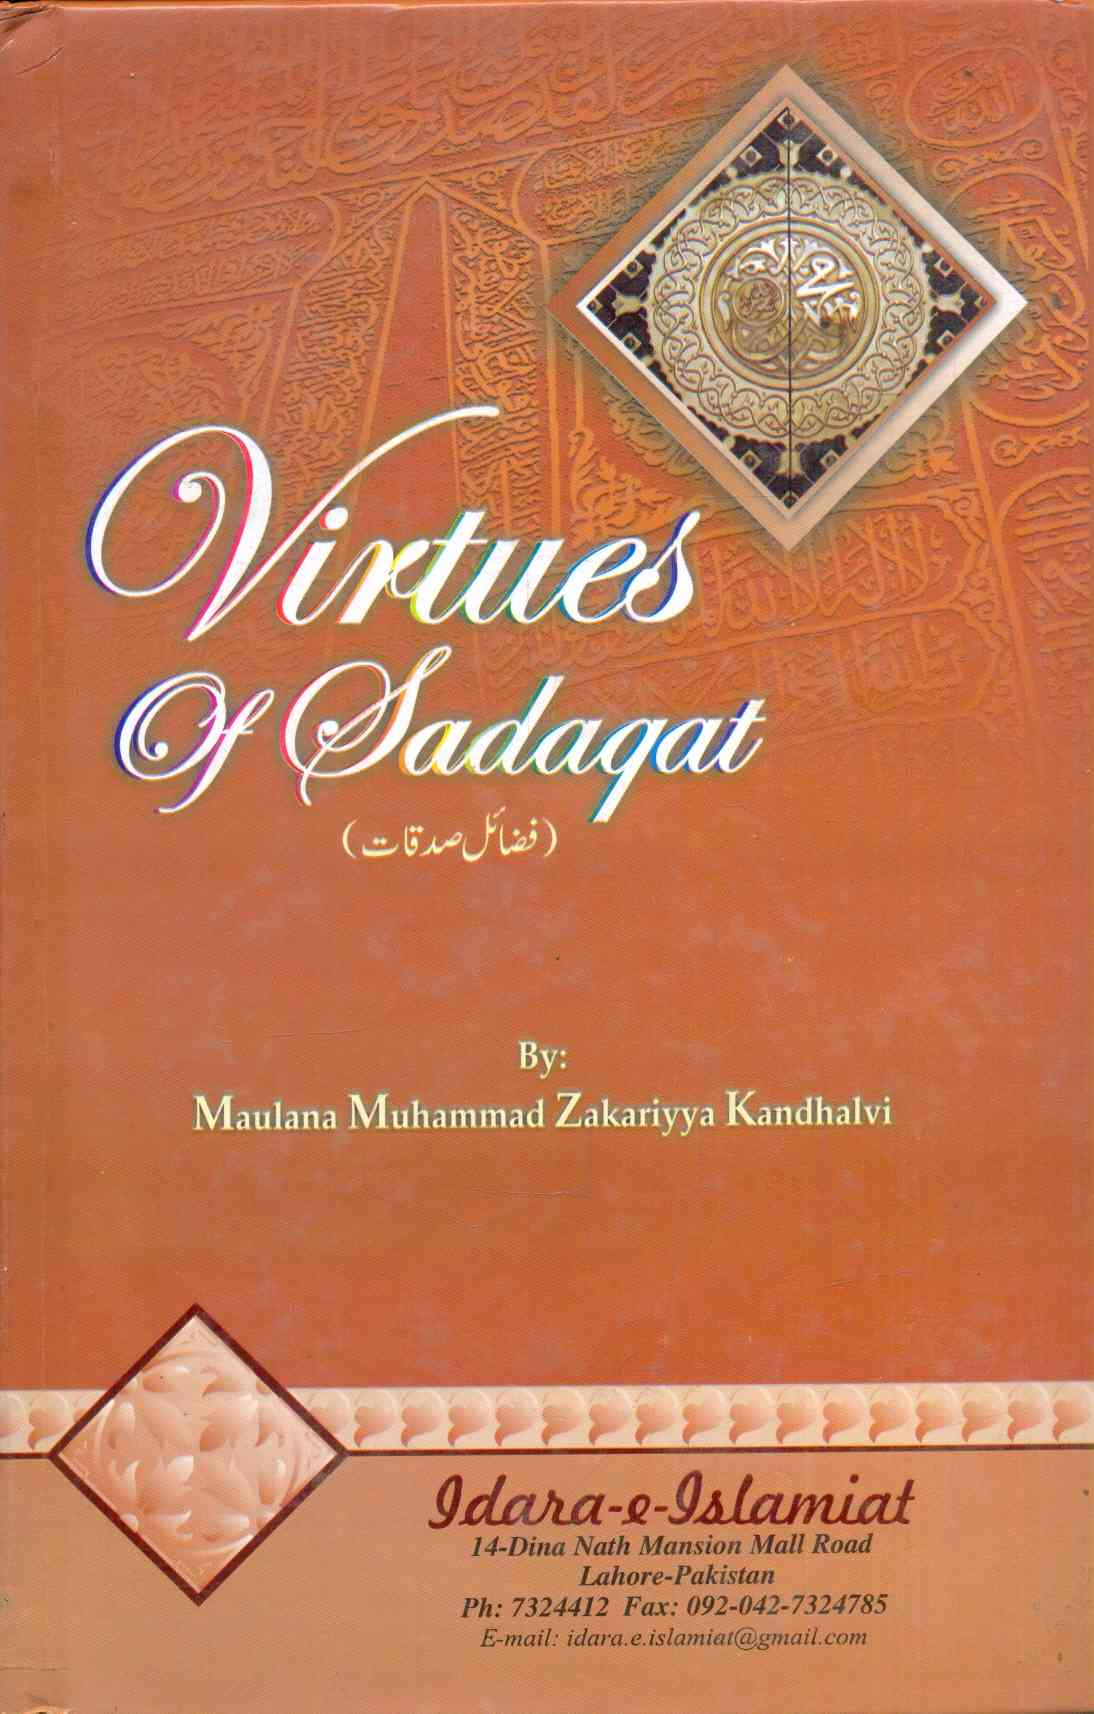 VIRTUES OF SADAQAT